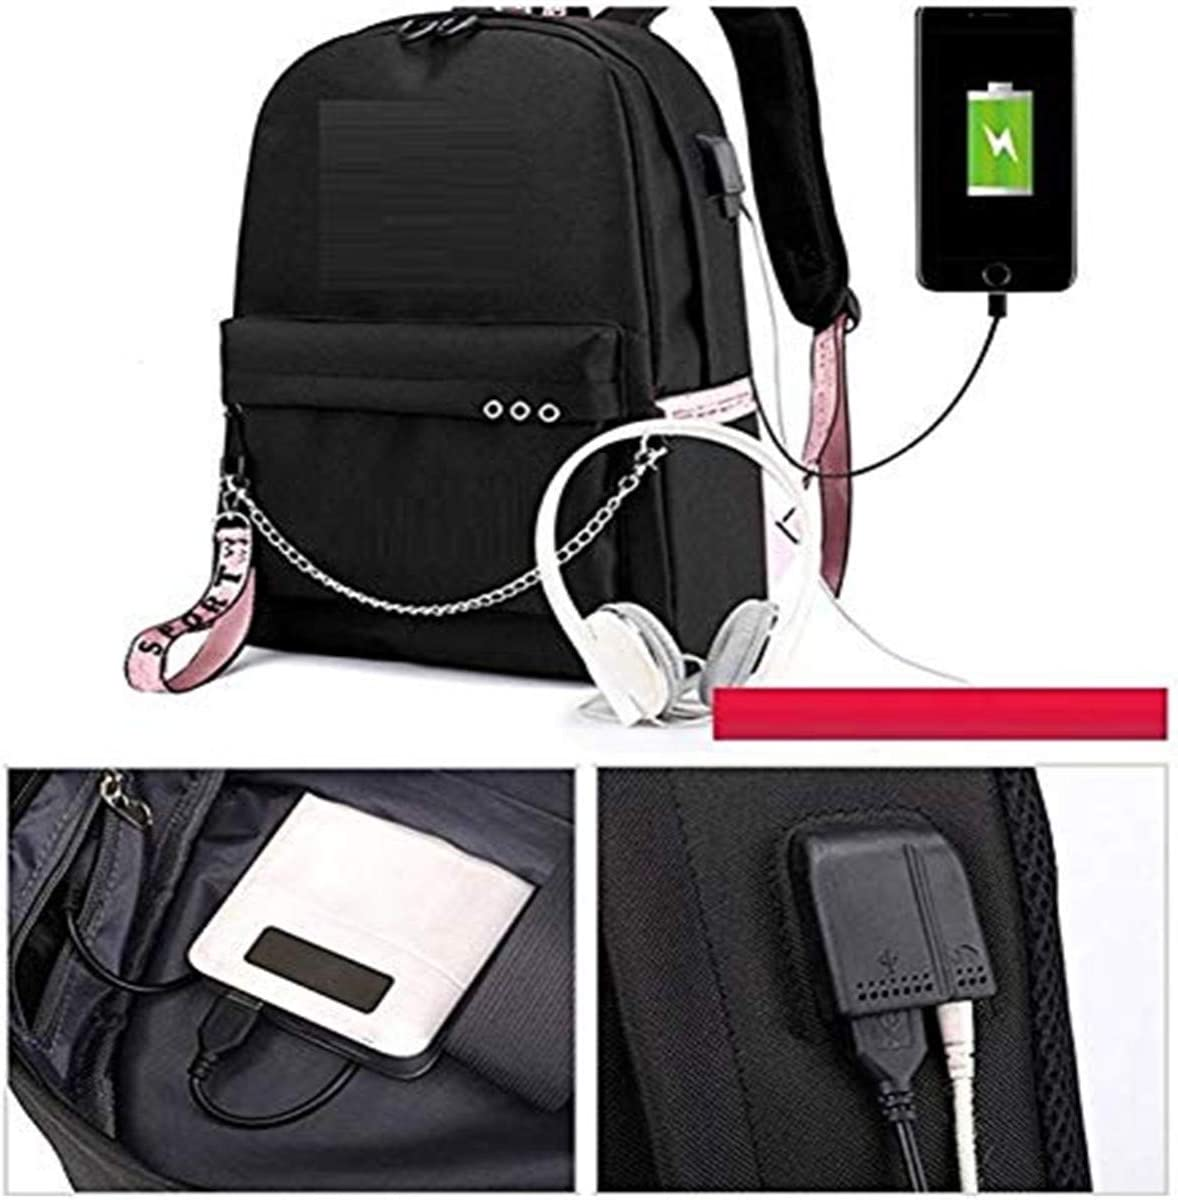 Unisex Korea Pop Korea Pop Backpack Kpop Gift Daypack Laptop Bag College School Bookbag Light Jungkook Jimin suga v bighit Stick with USB Charging Port Jimin Black